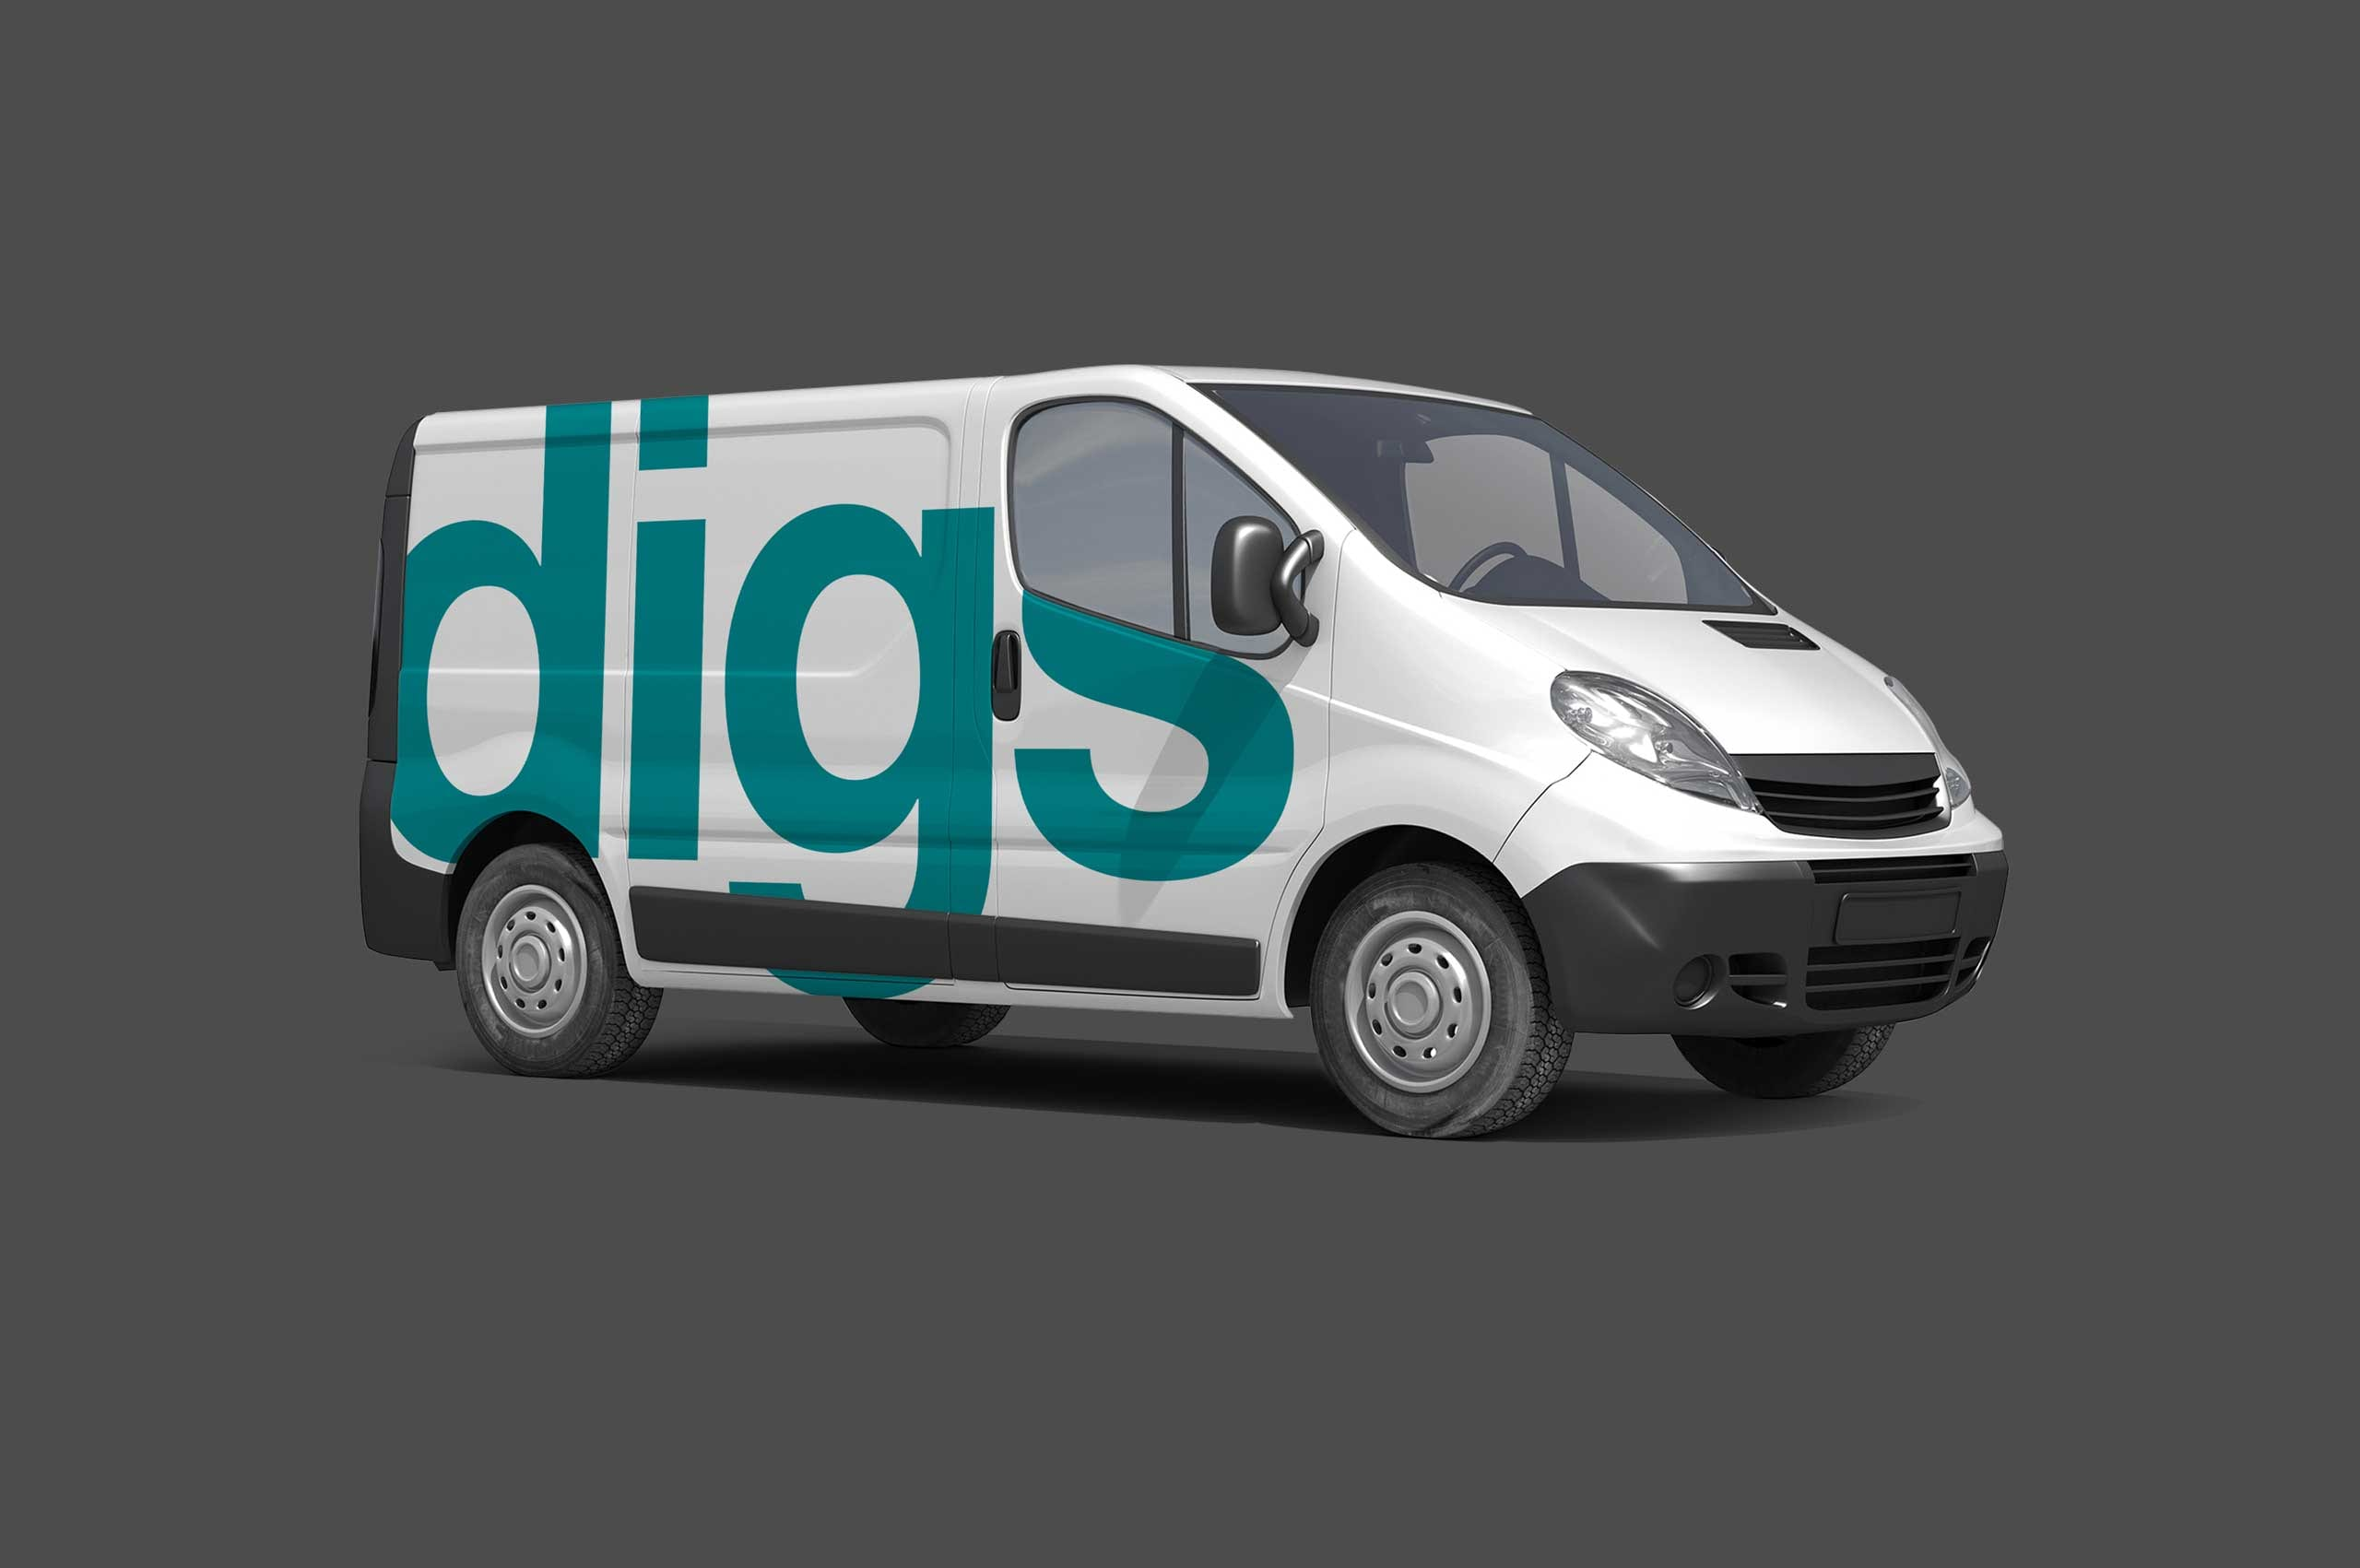 Digs vehicle graphic